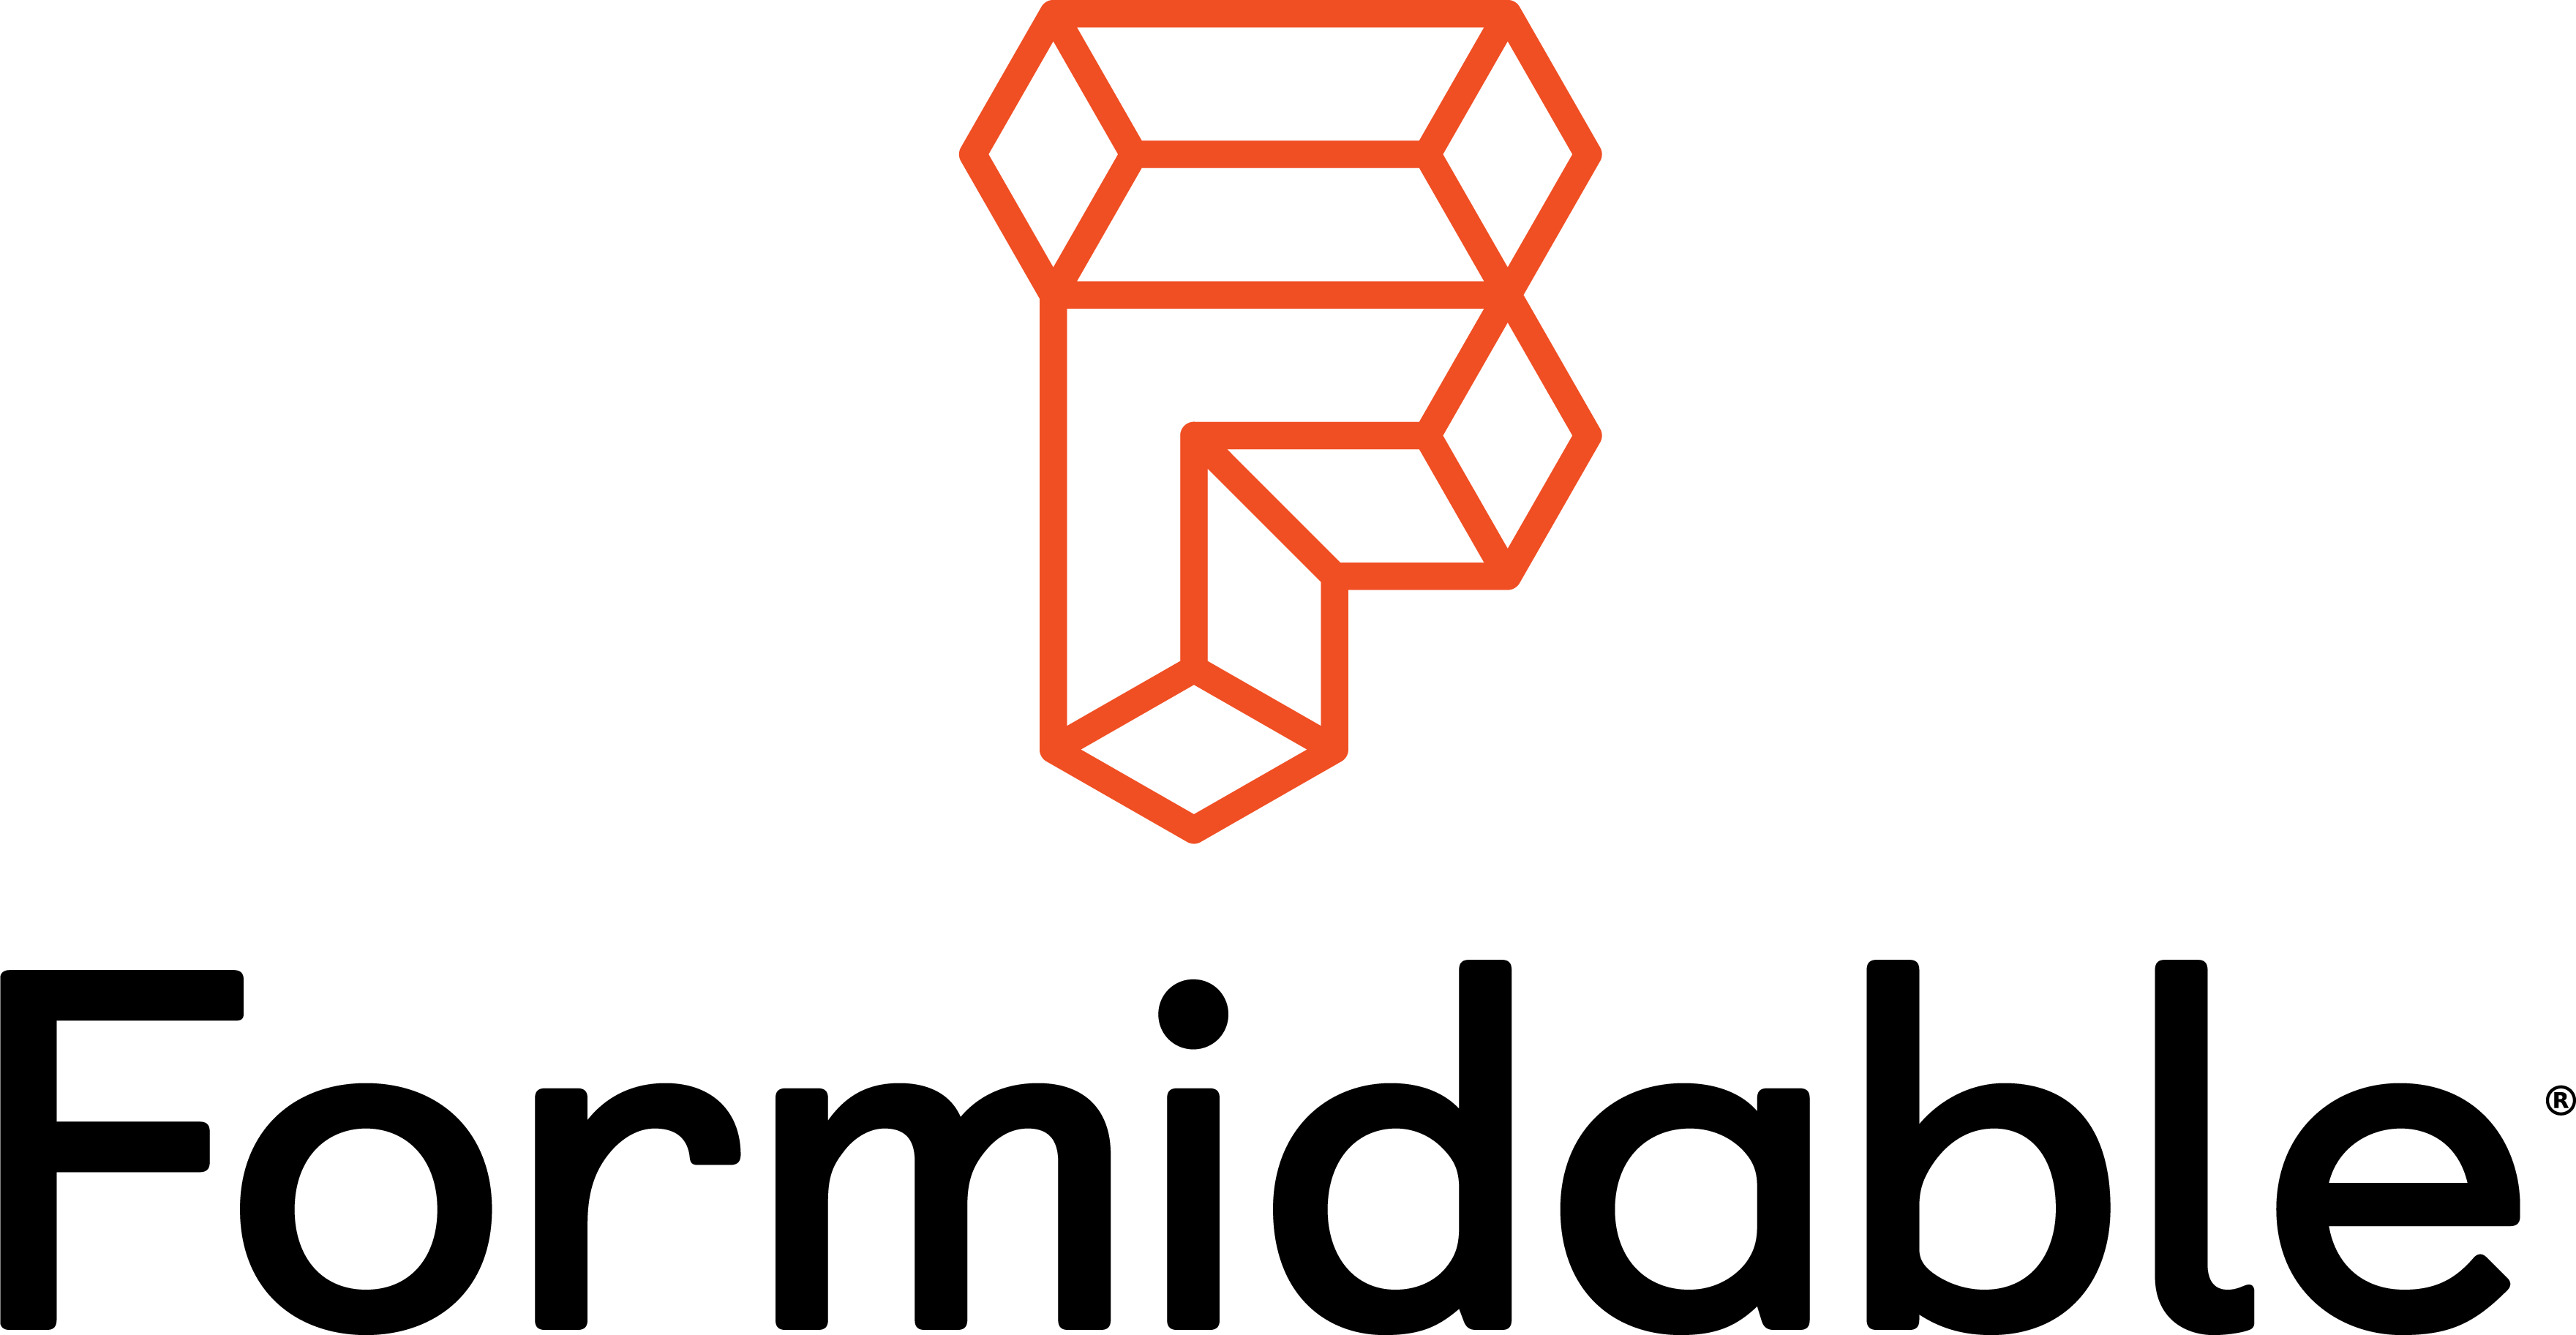 Formidable logo